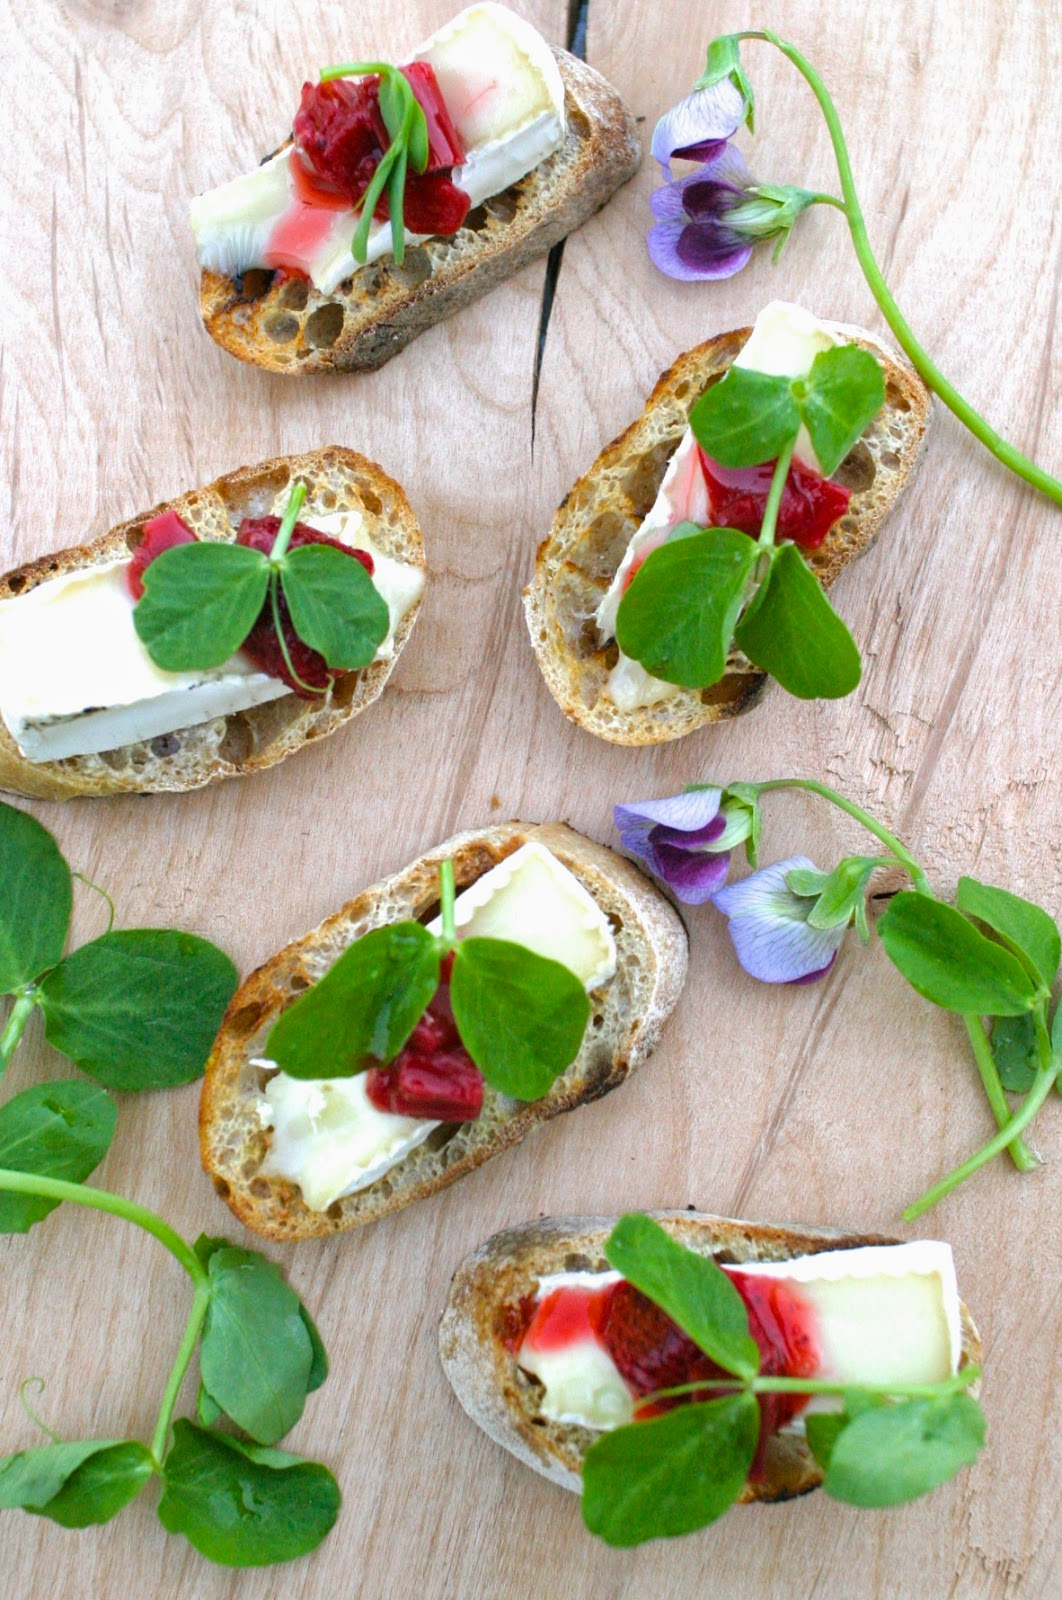 All Our Fingers in the Pie: Pea Shoot Topped Crostini